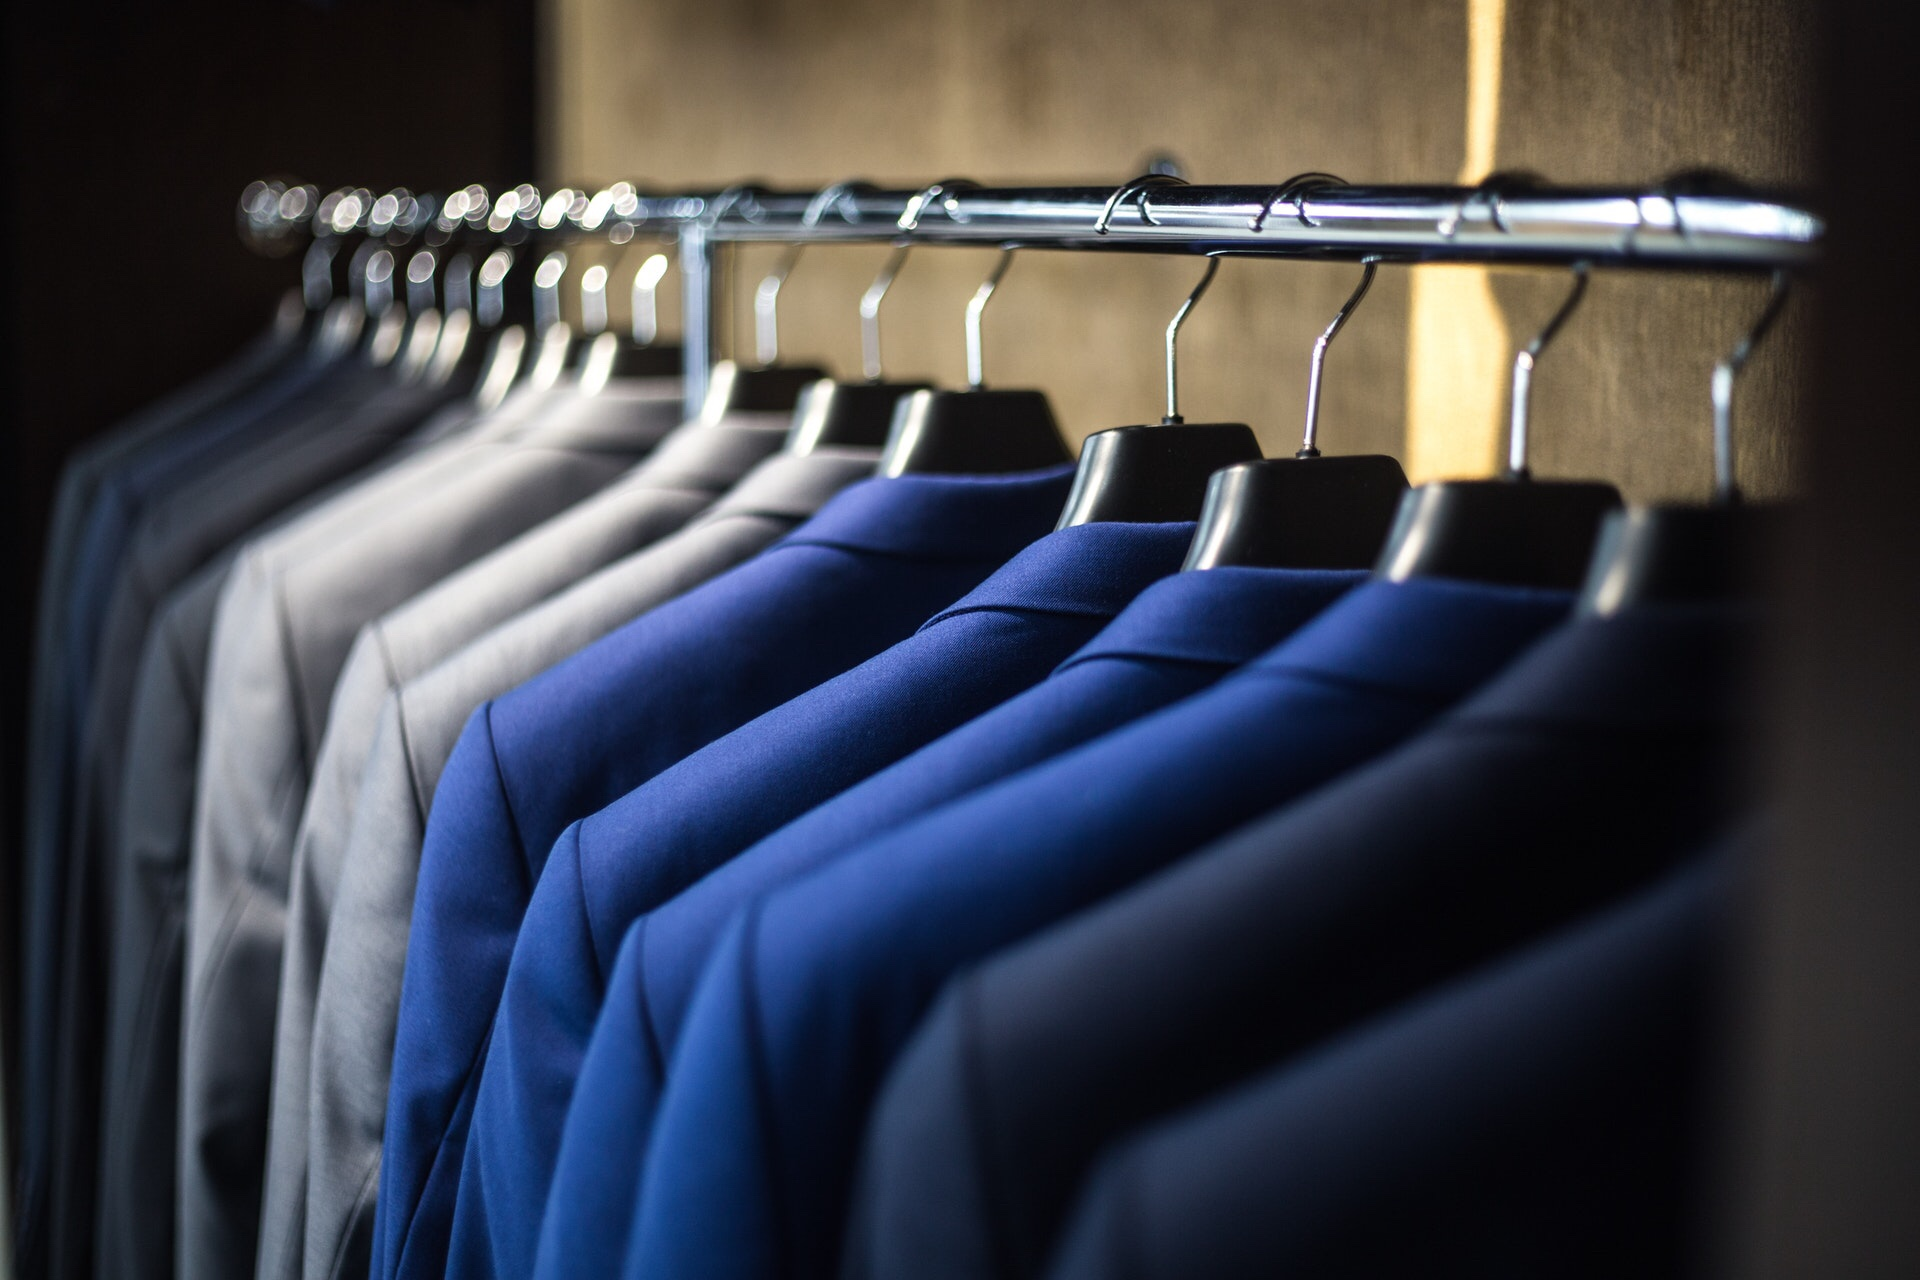 Neatly organized closet of various suits